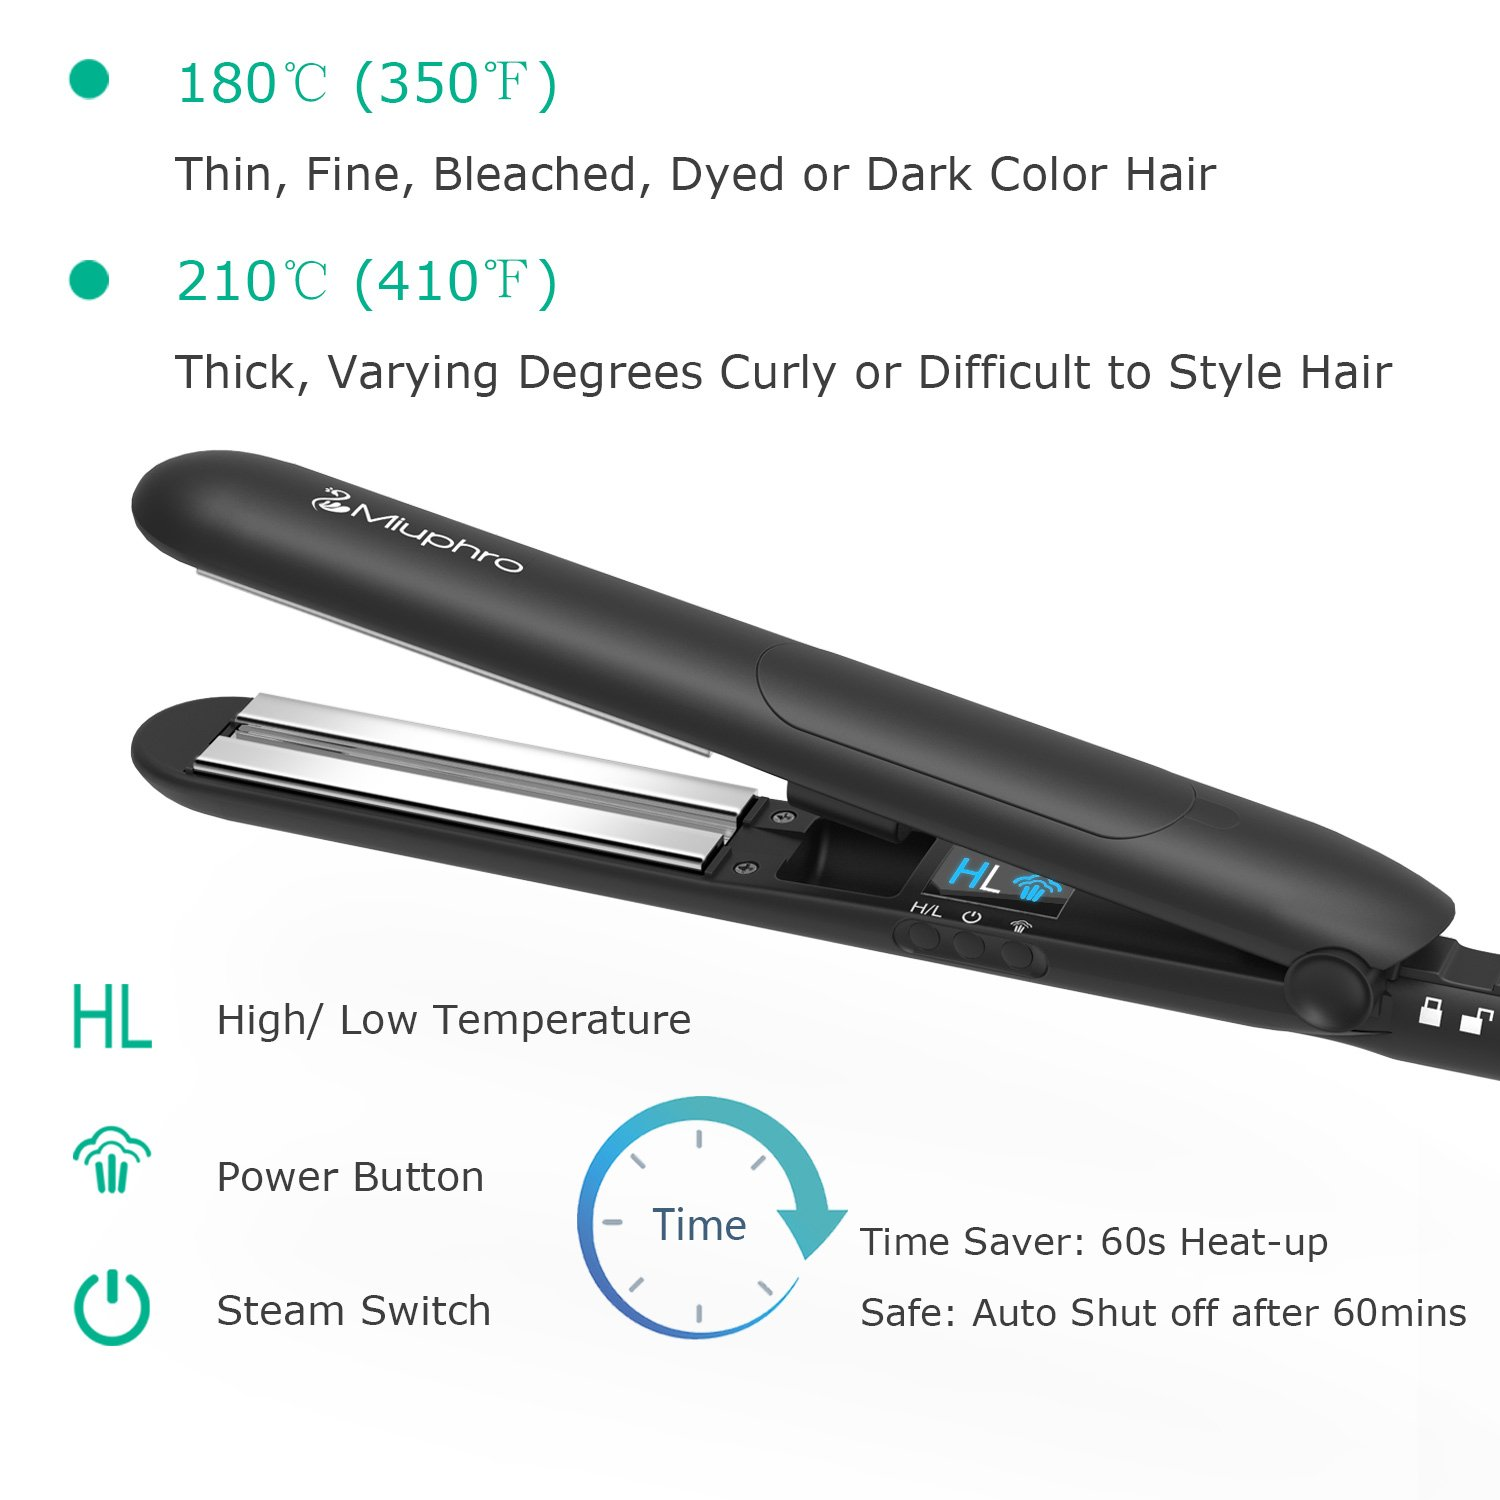 Miuphro Steam Hair Straightener, Salon Hair Straightening Iron with Titanium Plate + Adjustable Temperatures +Locking Switch, Heats up Fast+ Portable Professional Vapor Flat Iron by Miuphro (Image #4)